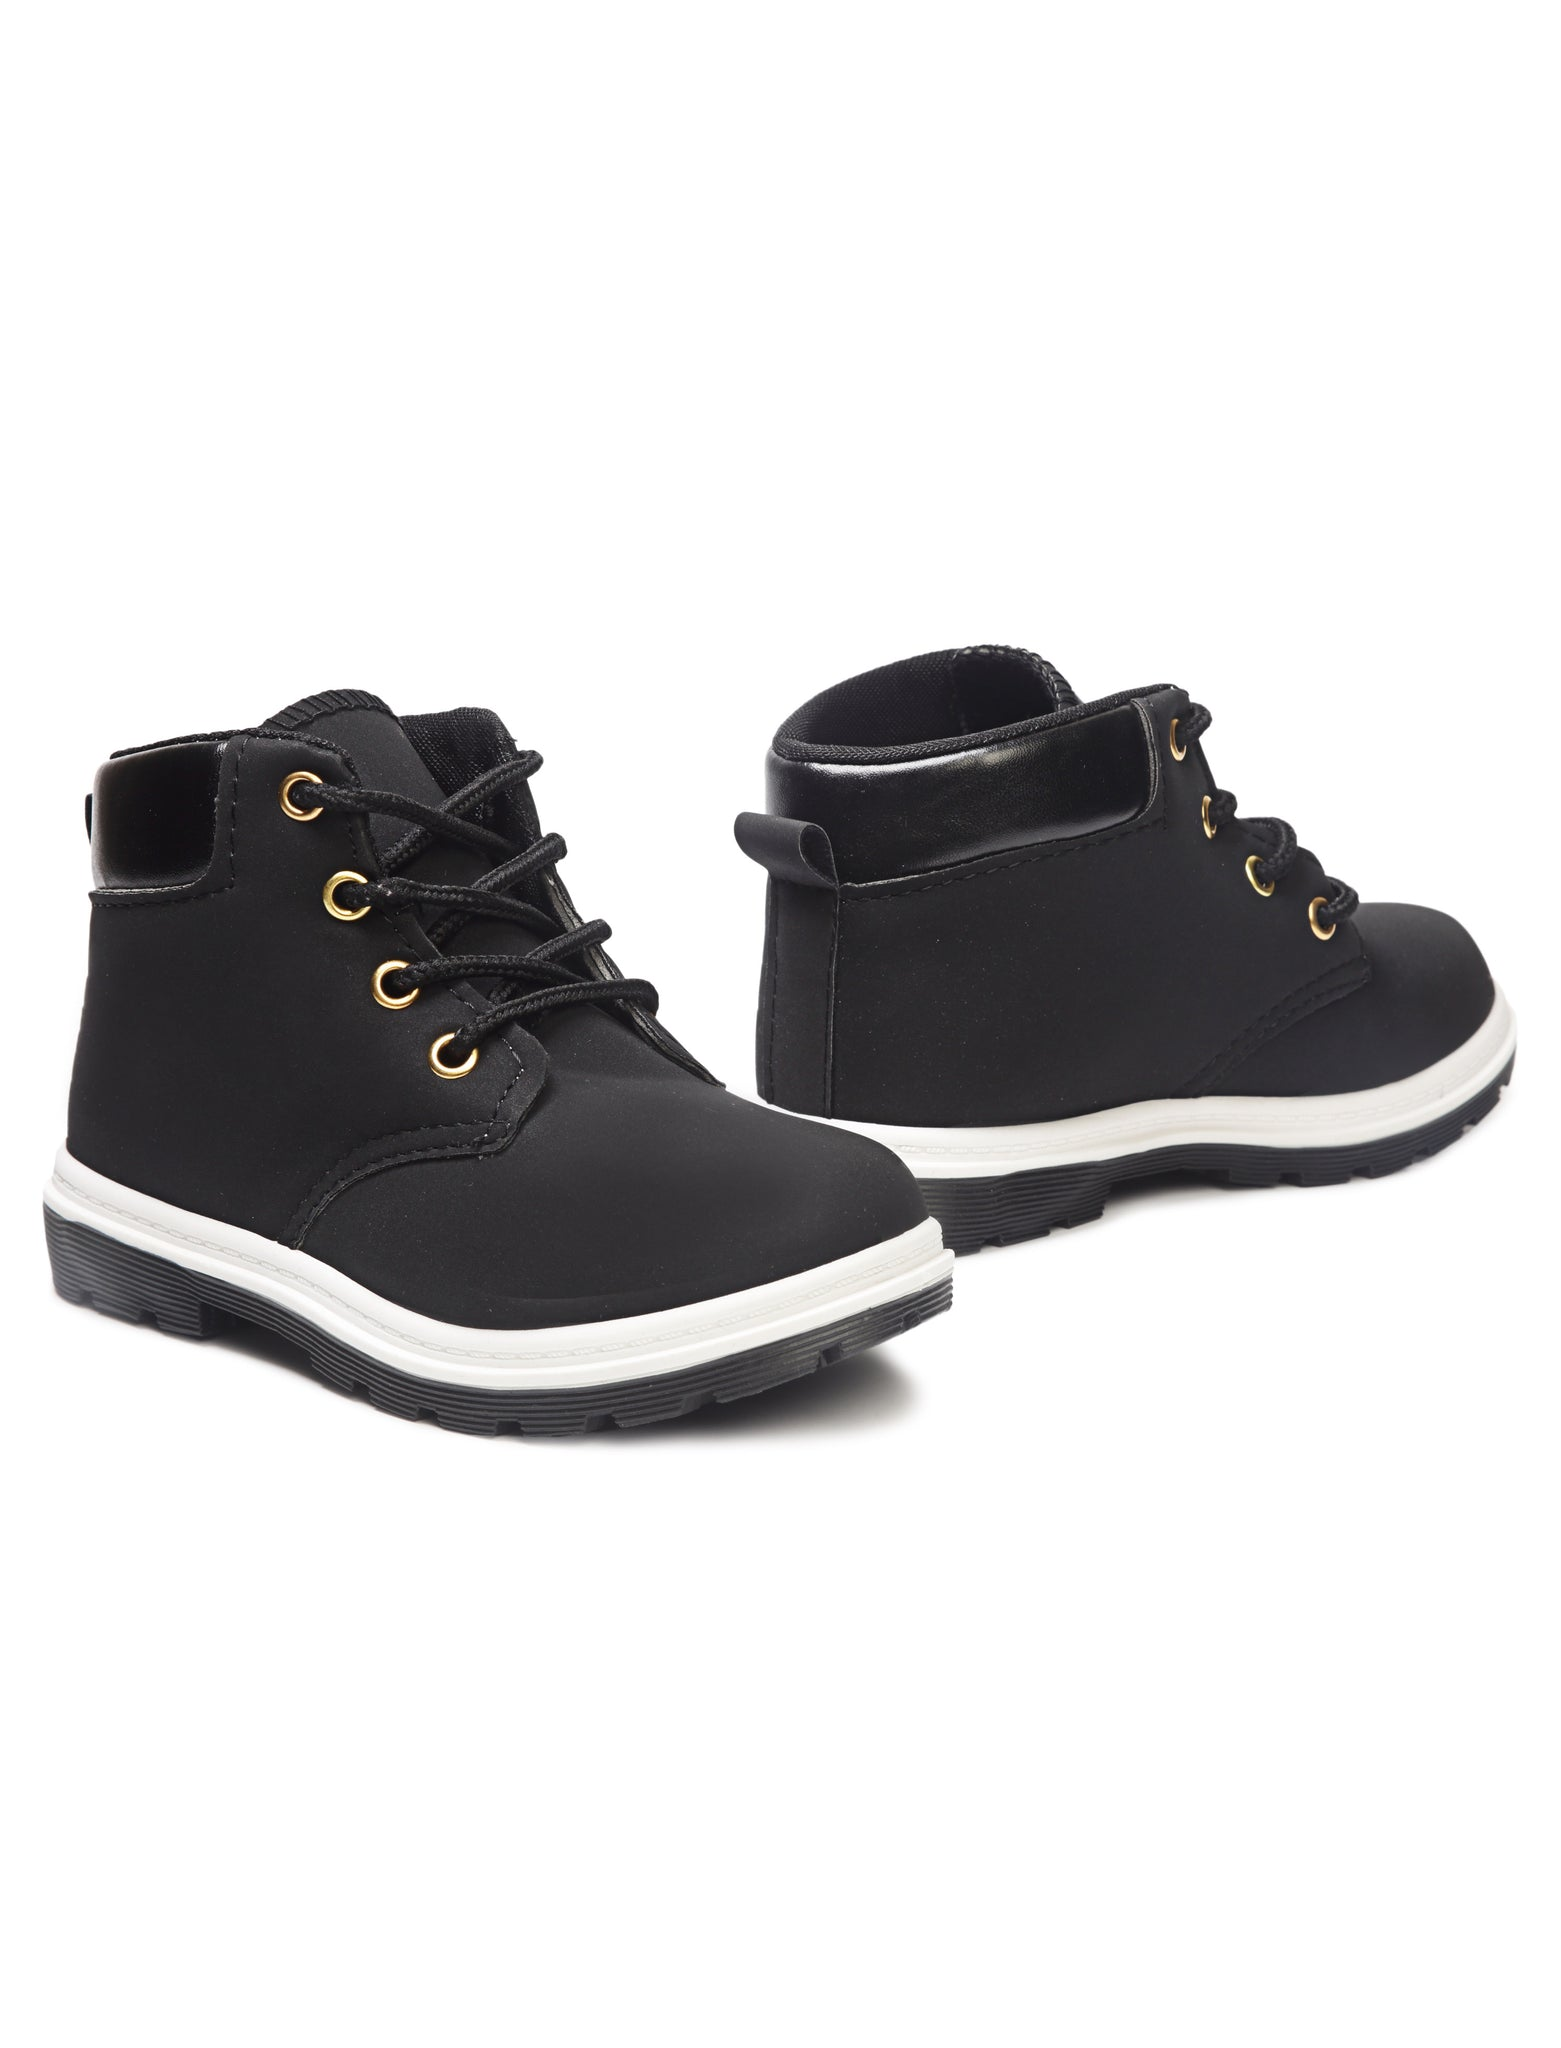 Boys Ankle Boots - Black